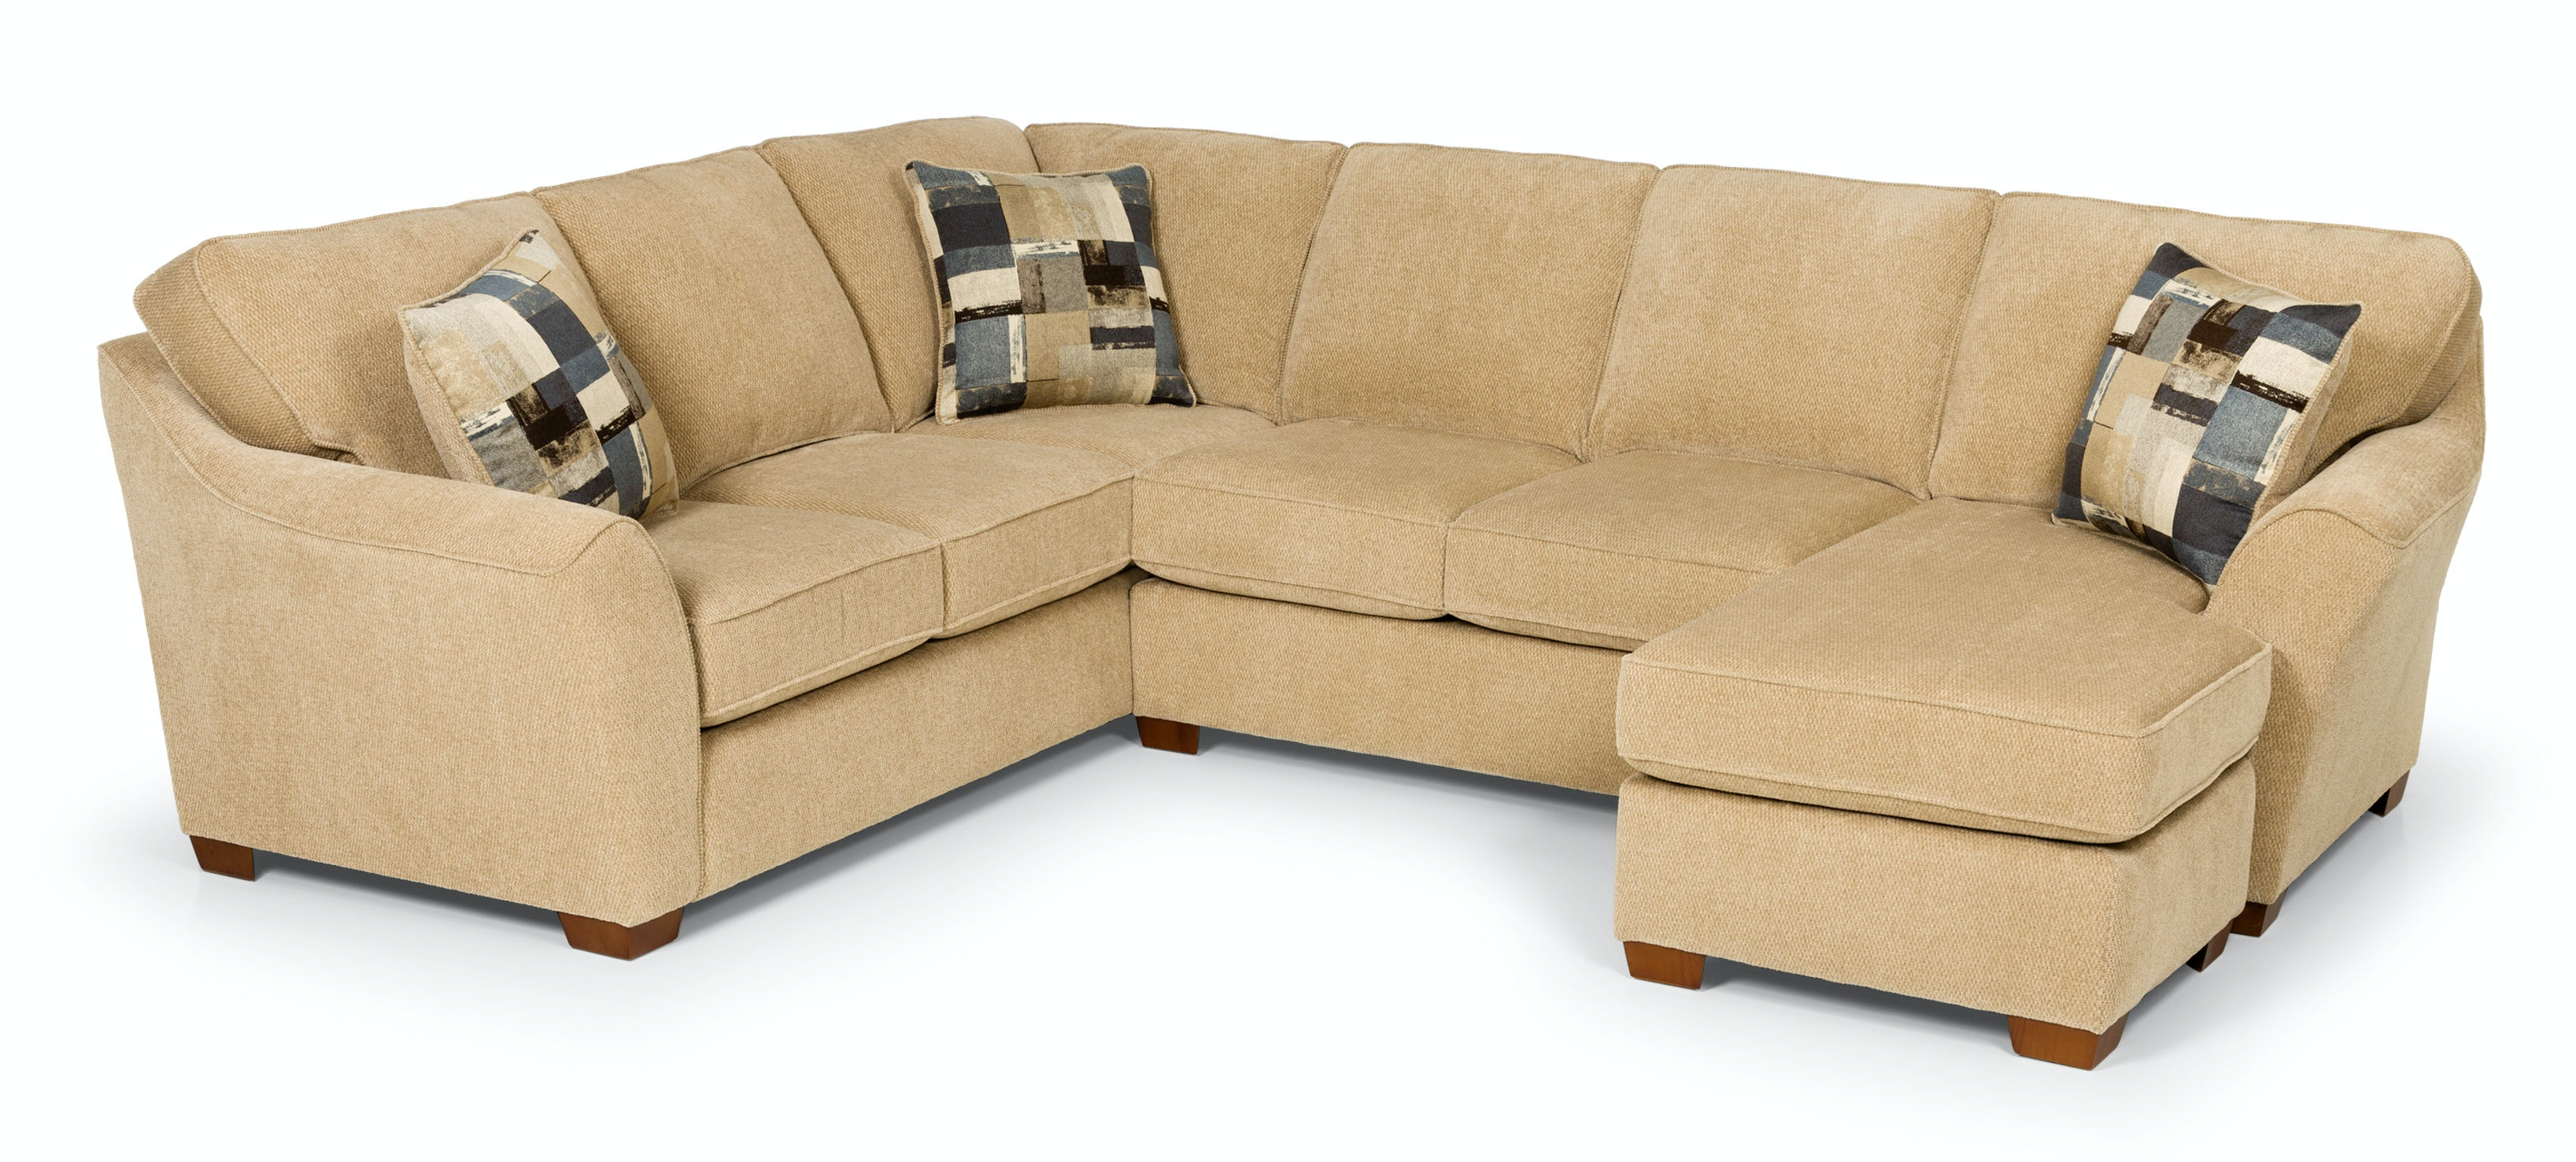 Stanton furniture living room 112 sectional at the living room furniture